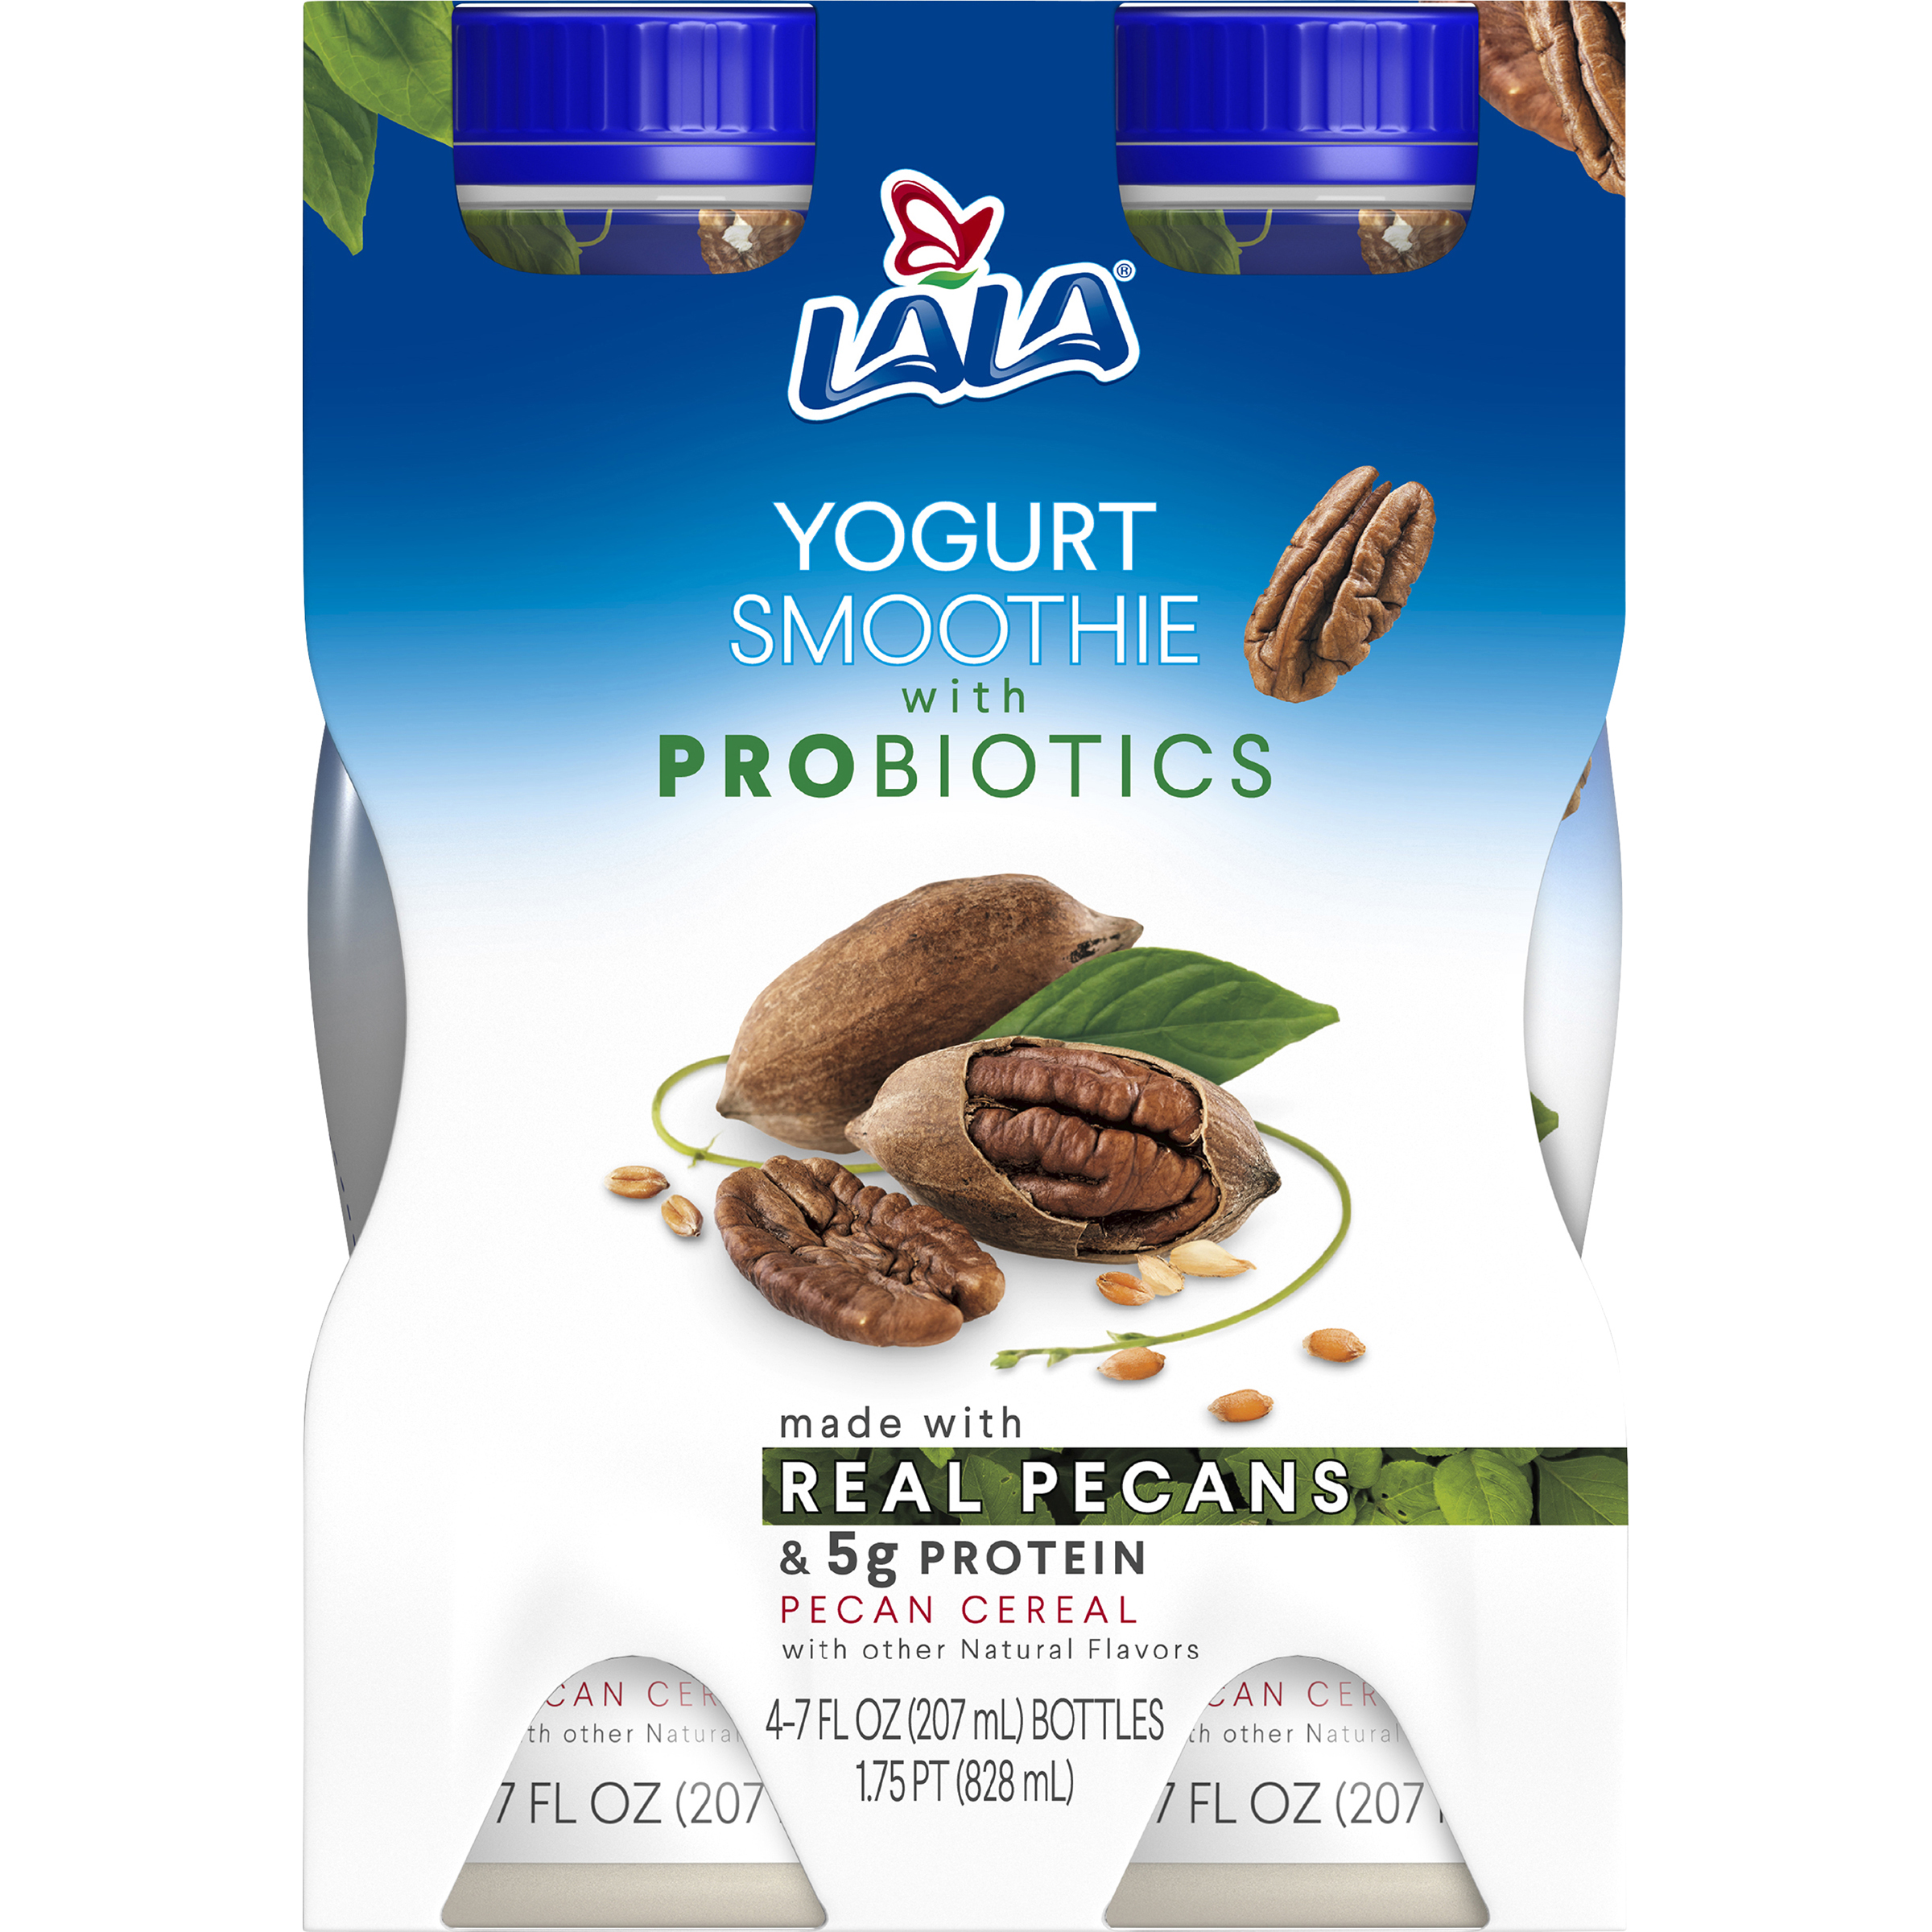 LALA Drinkable Yogurt Smoothie with Probiotics, 5g of Protein, Pecan Cereal, 7-Ounce Bottles (Pack of 4)